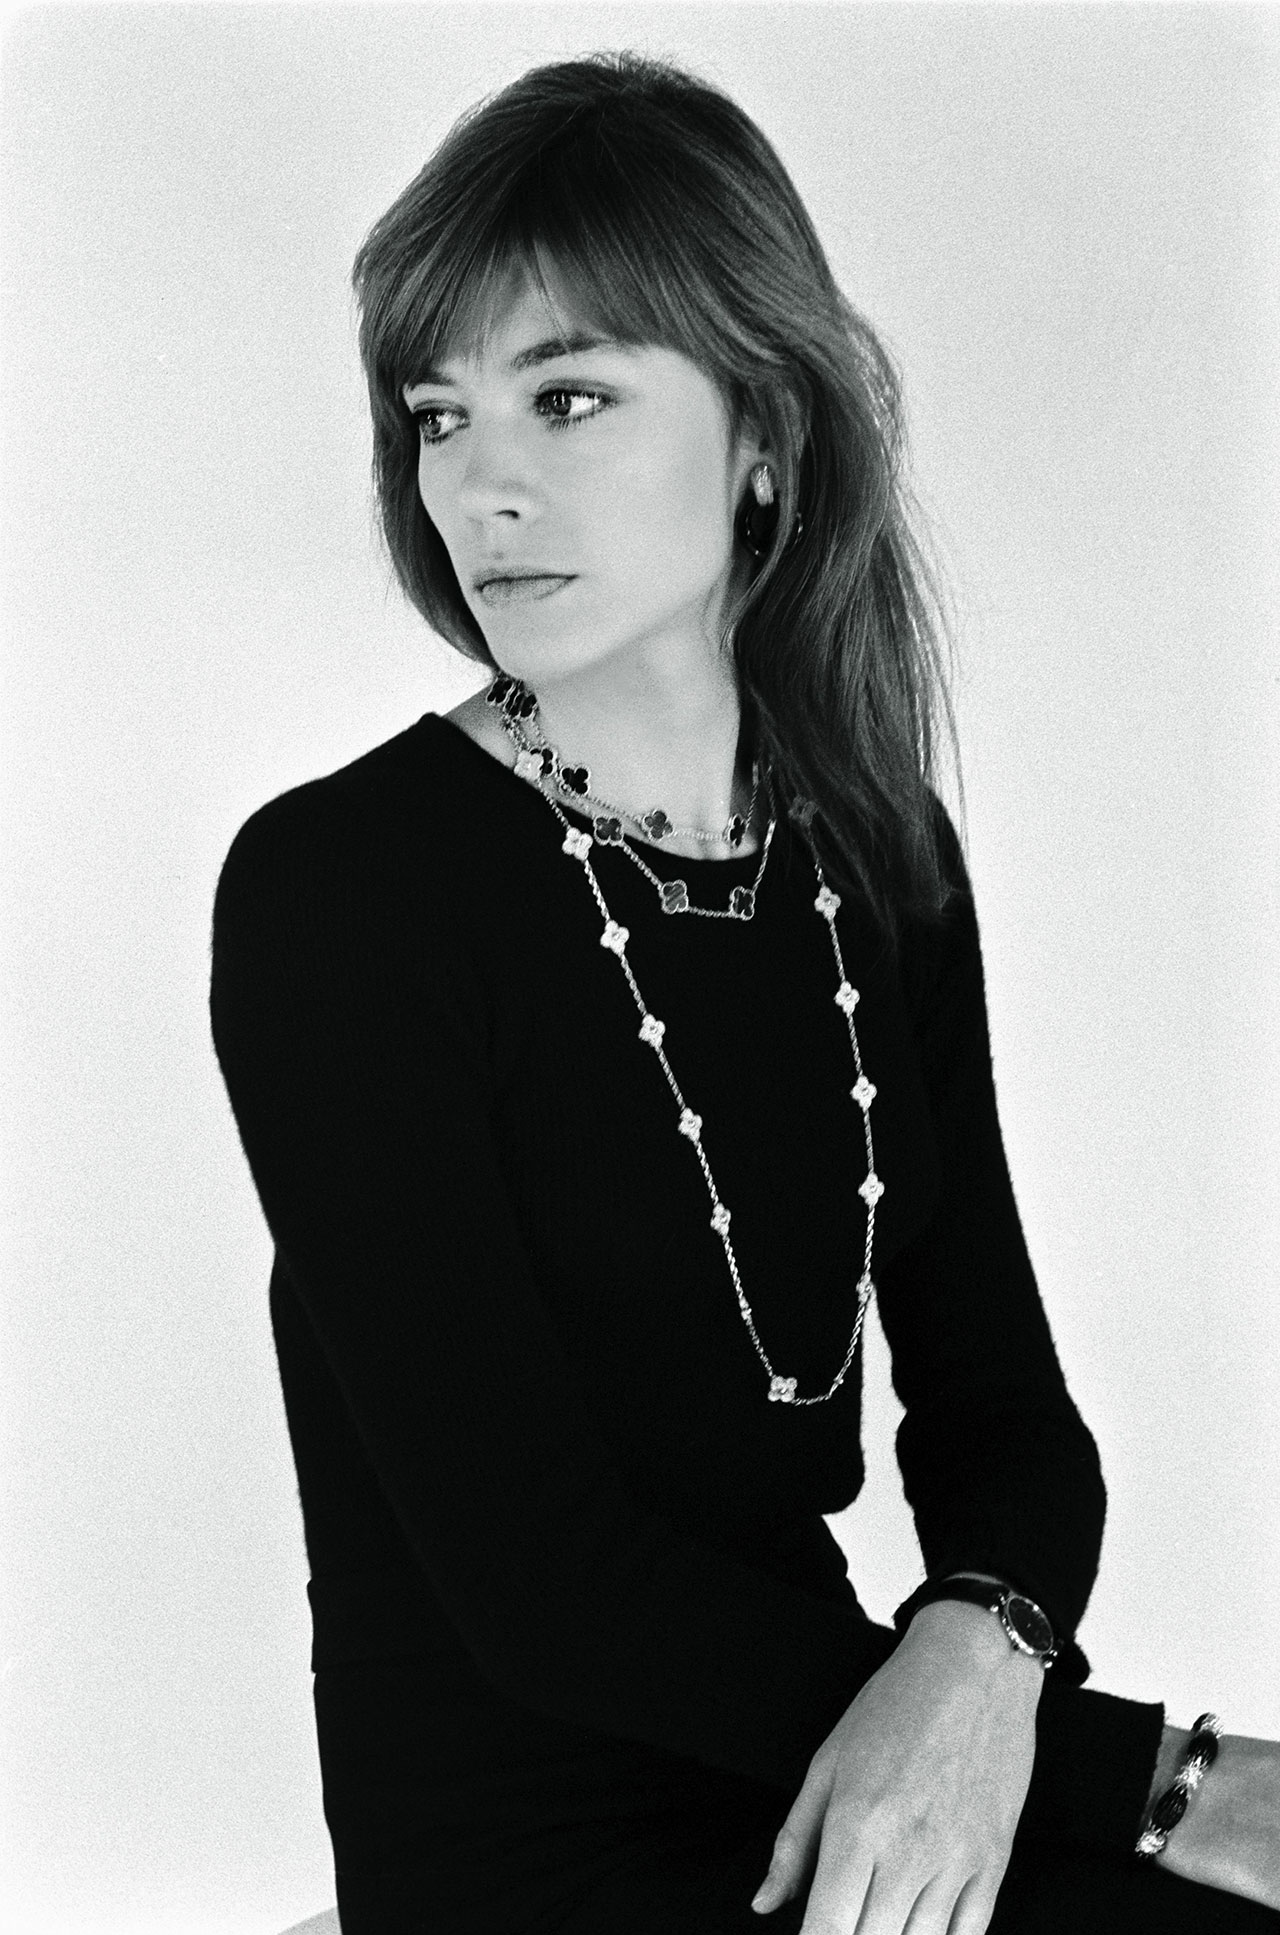 Françoise Hardy wearing Alhambra collection necklaces photographed by Catherine Rotulo, 1974. © Catherine Rotulo.